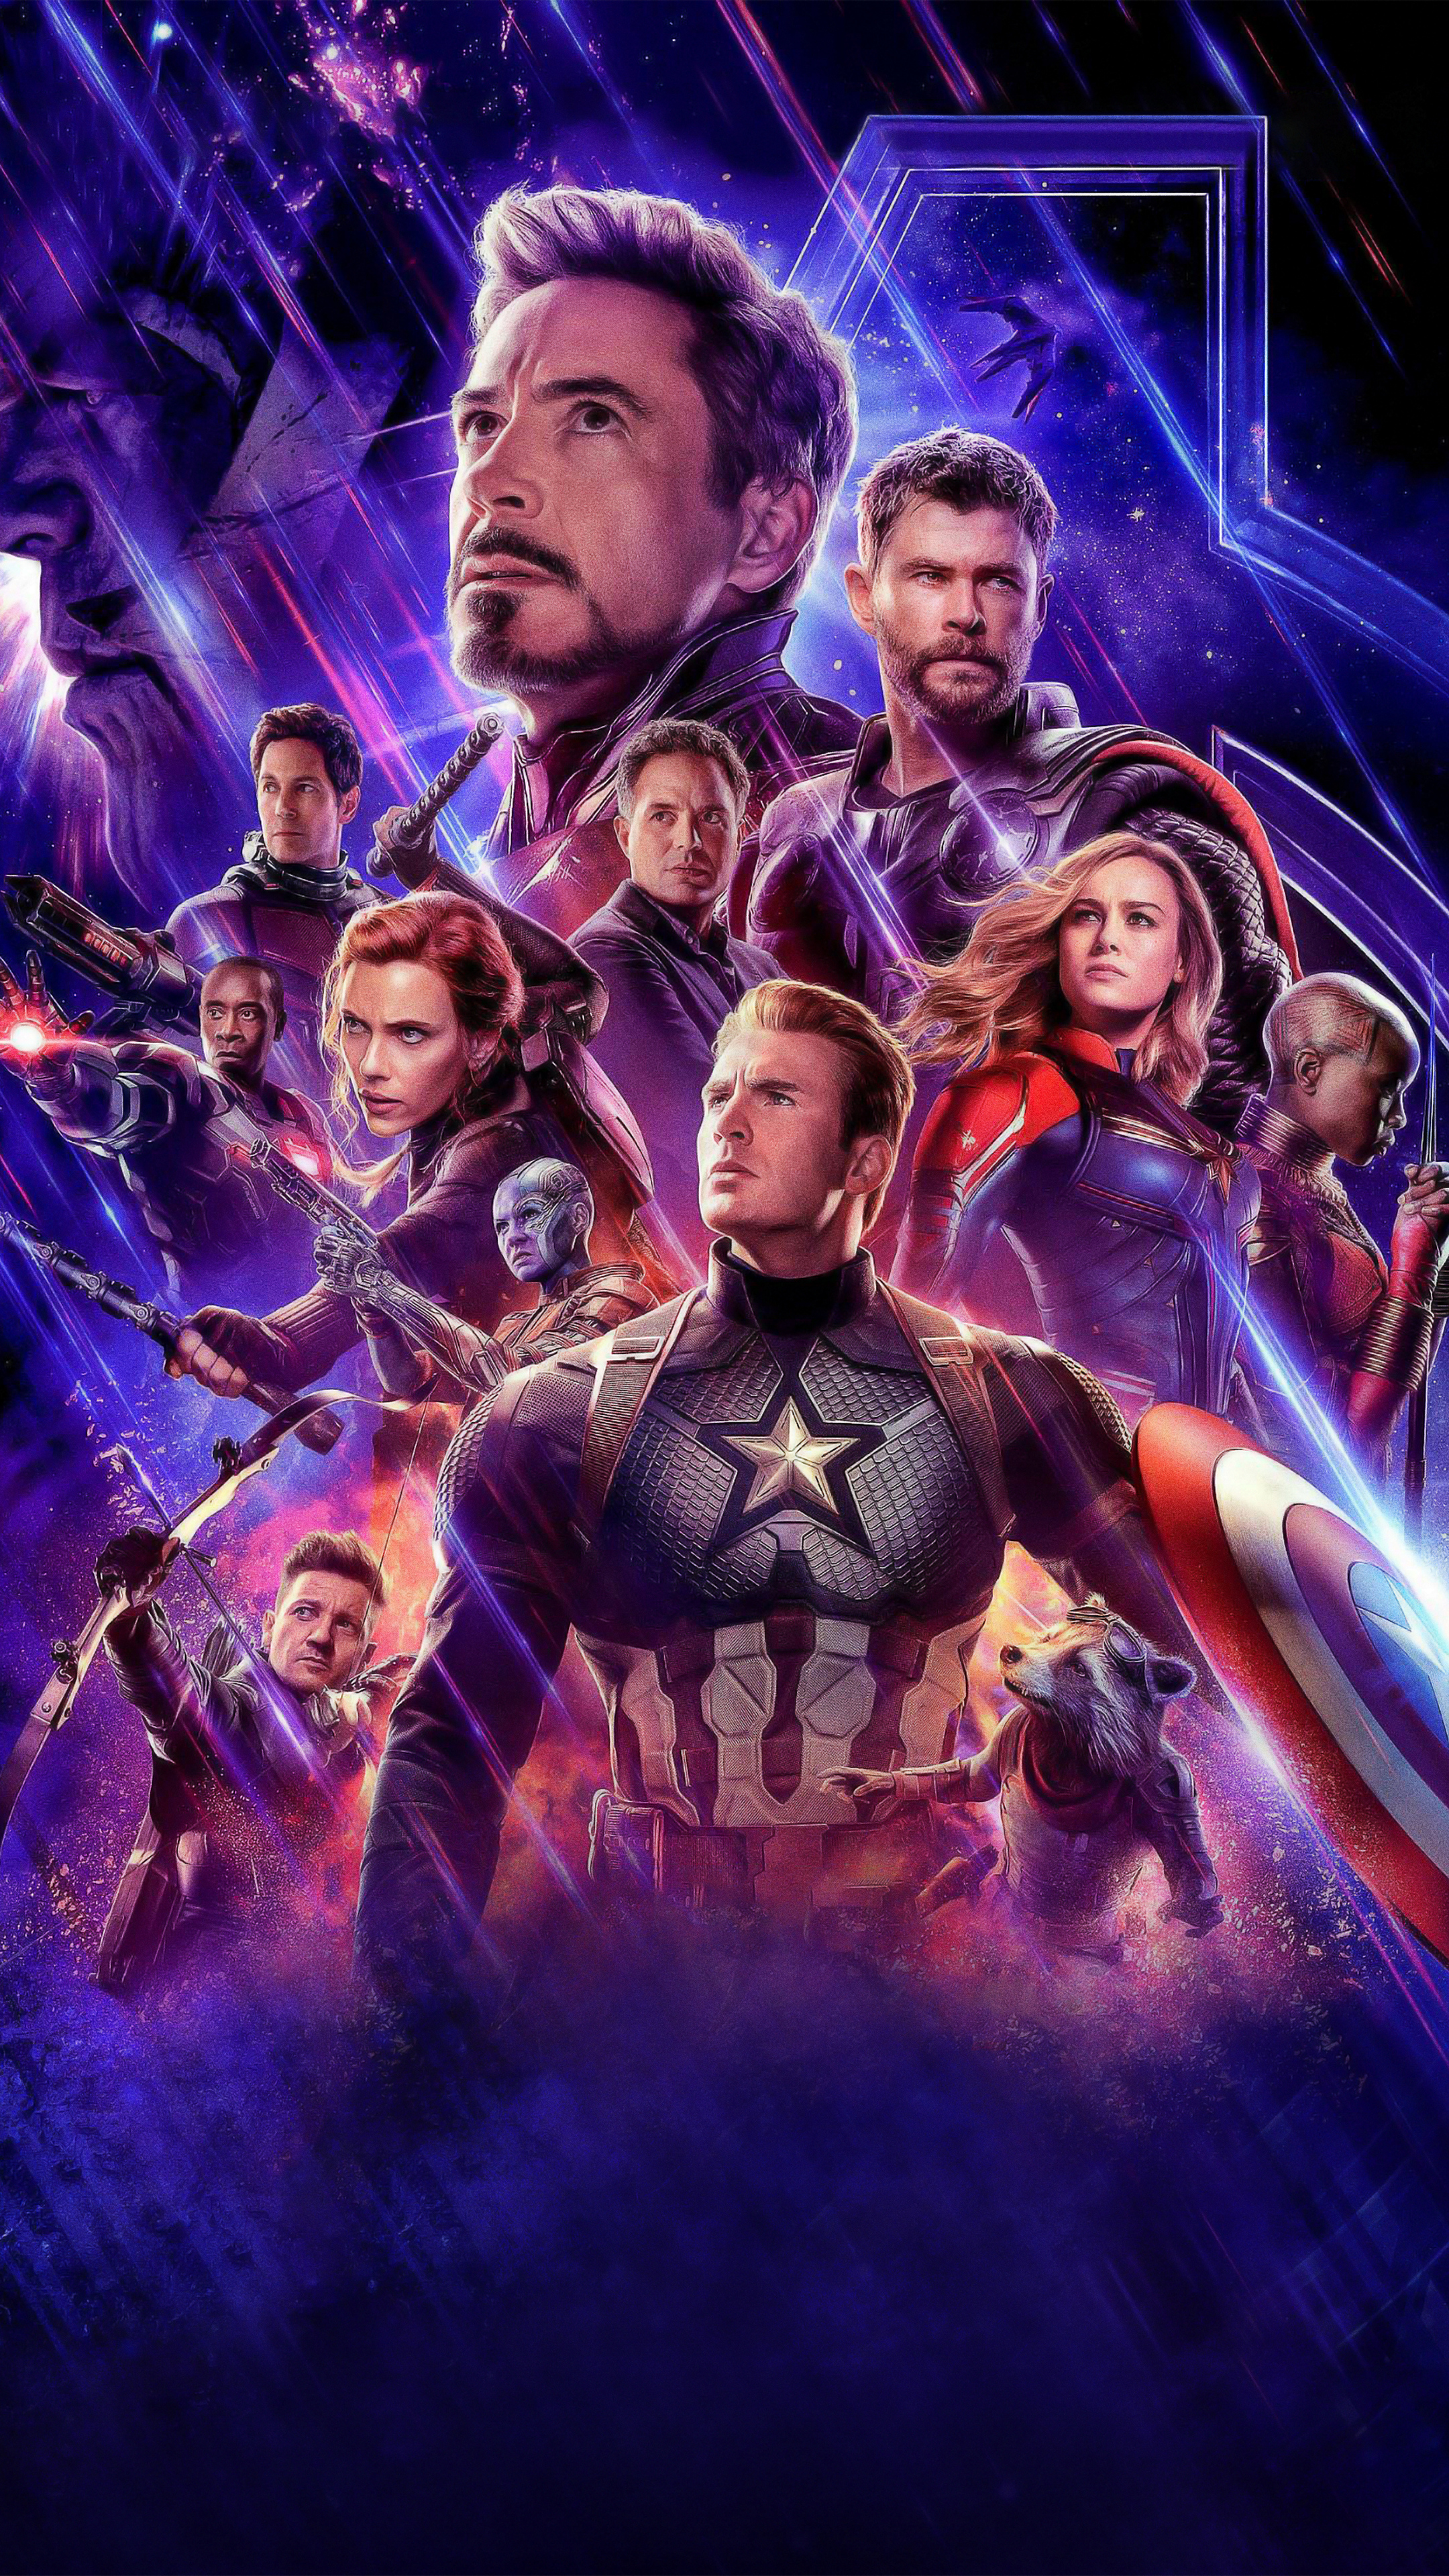 avengers-endgame-2019-official-poster-th.jpg